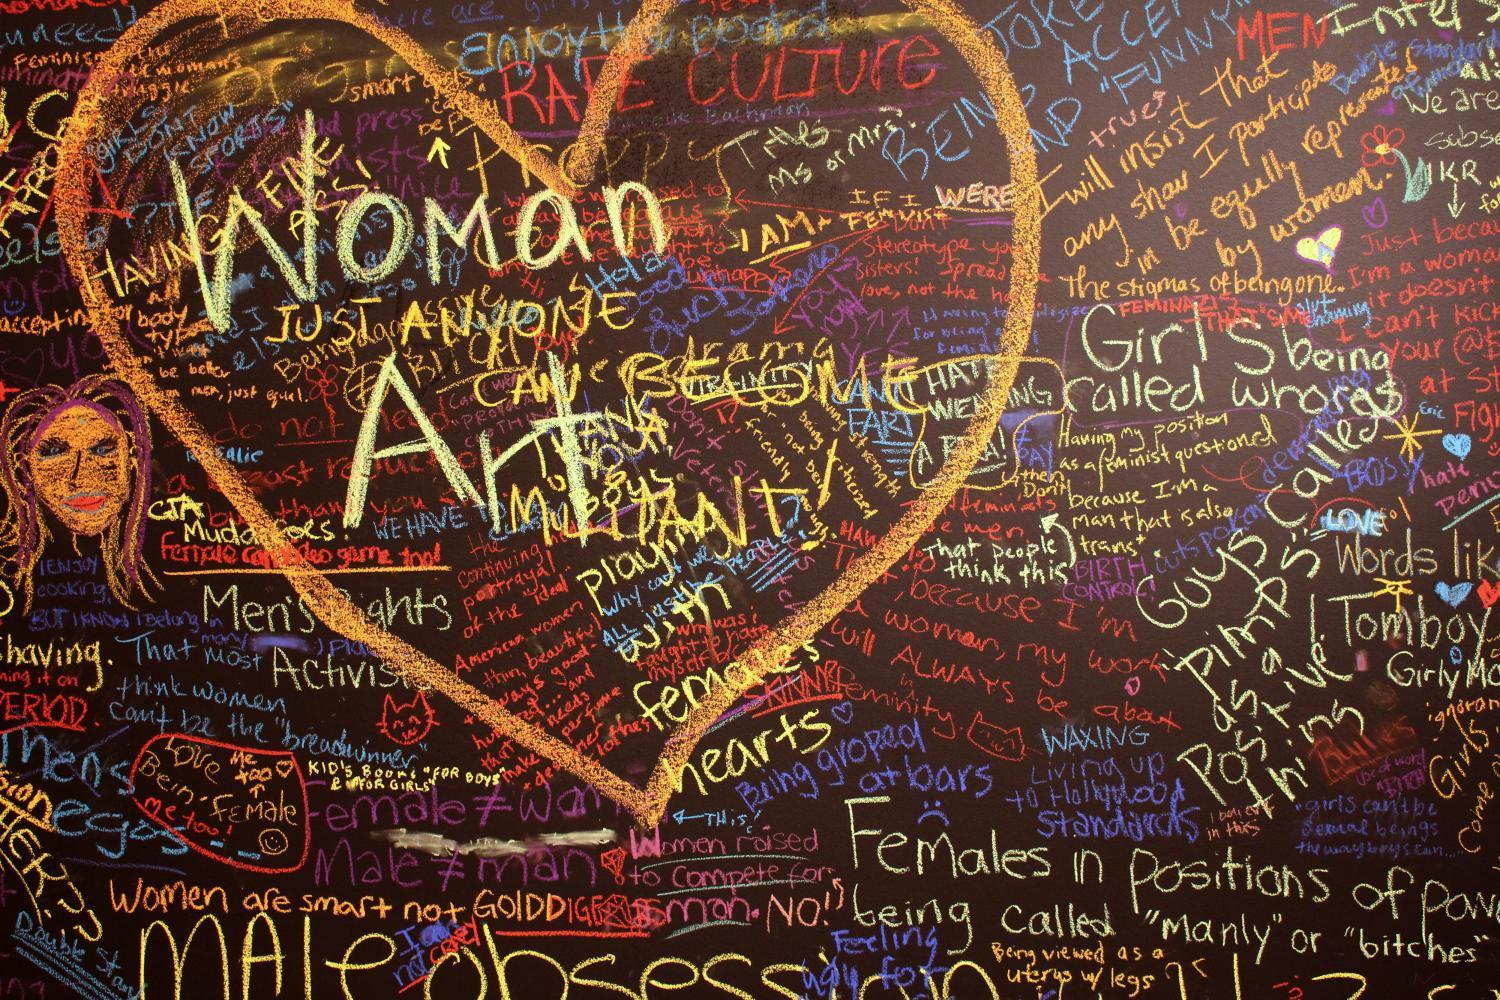 I Am a Feminist Because..., 2014. Interactive art installation at Krannert Art Museum